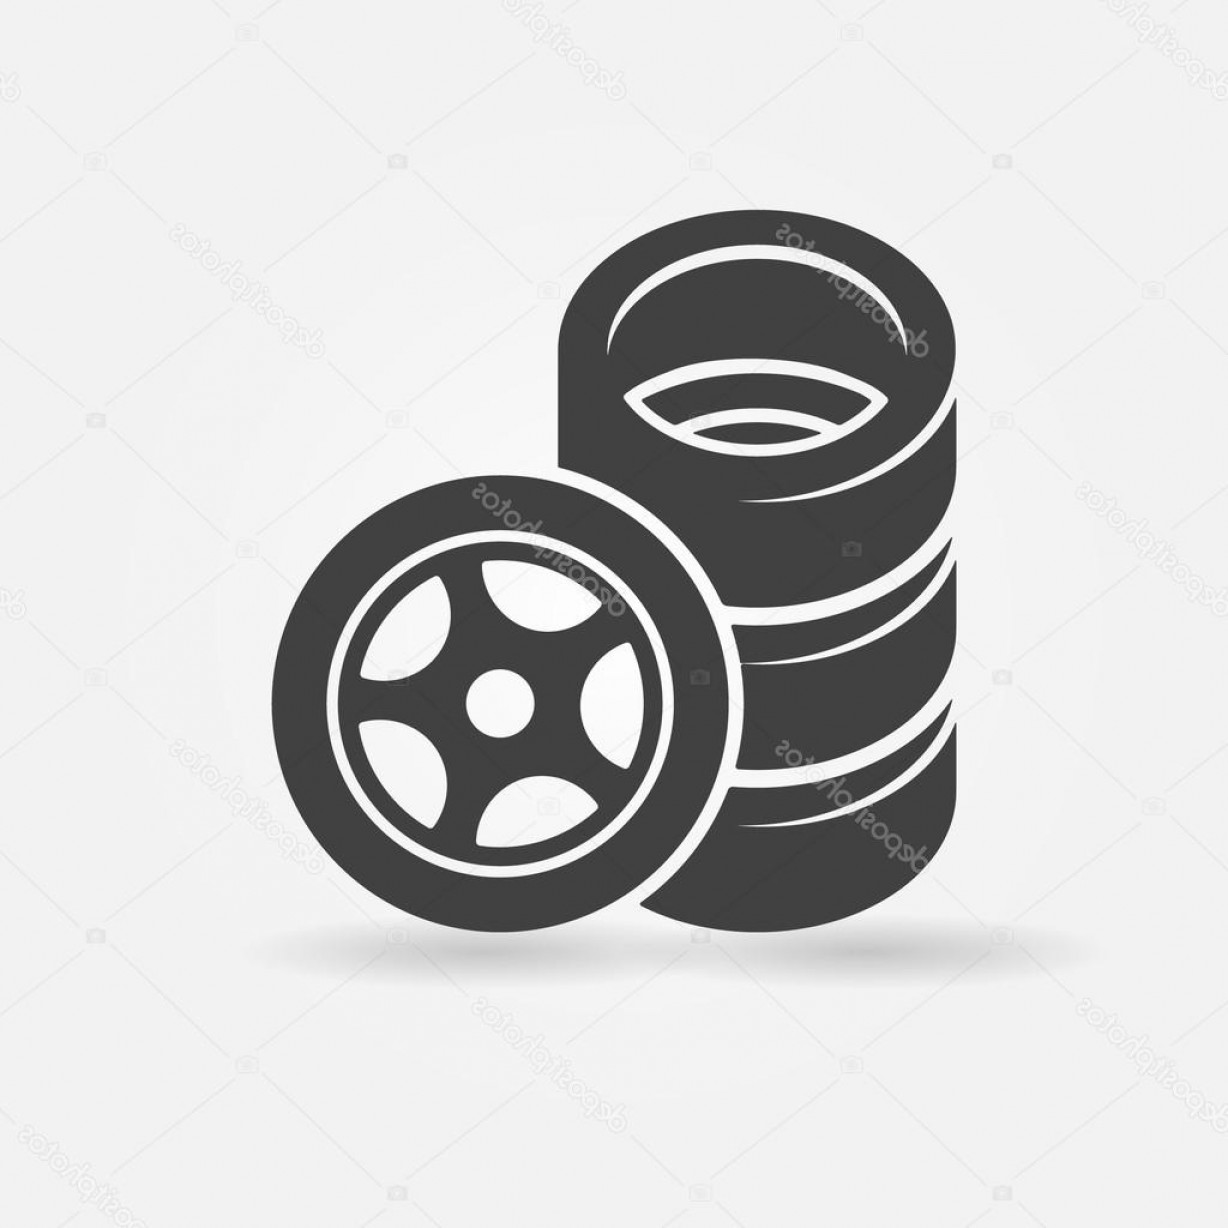 Tire Icon Vector: Stock Illustration Car Wheel And Tires Icon